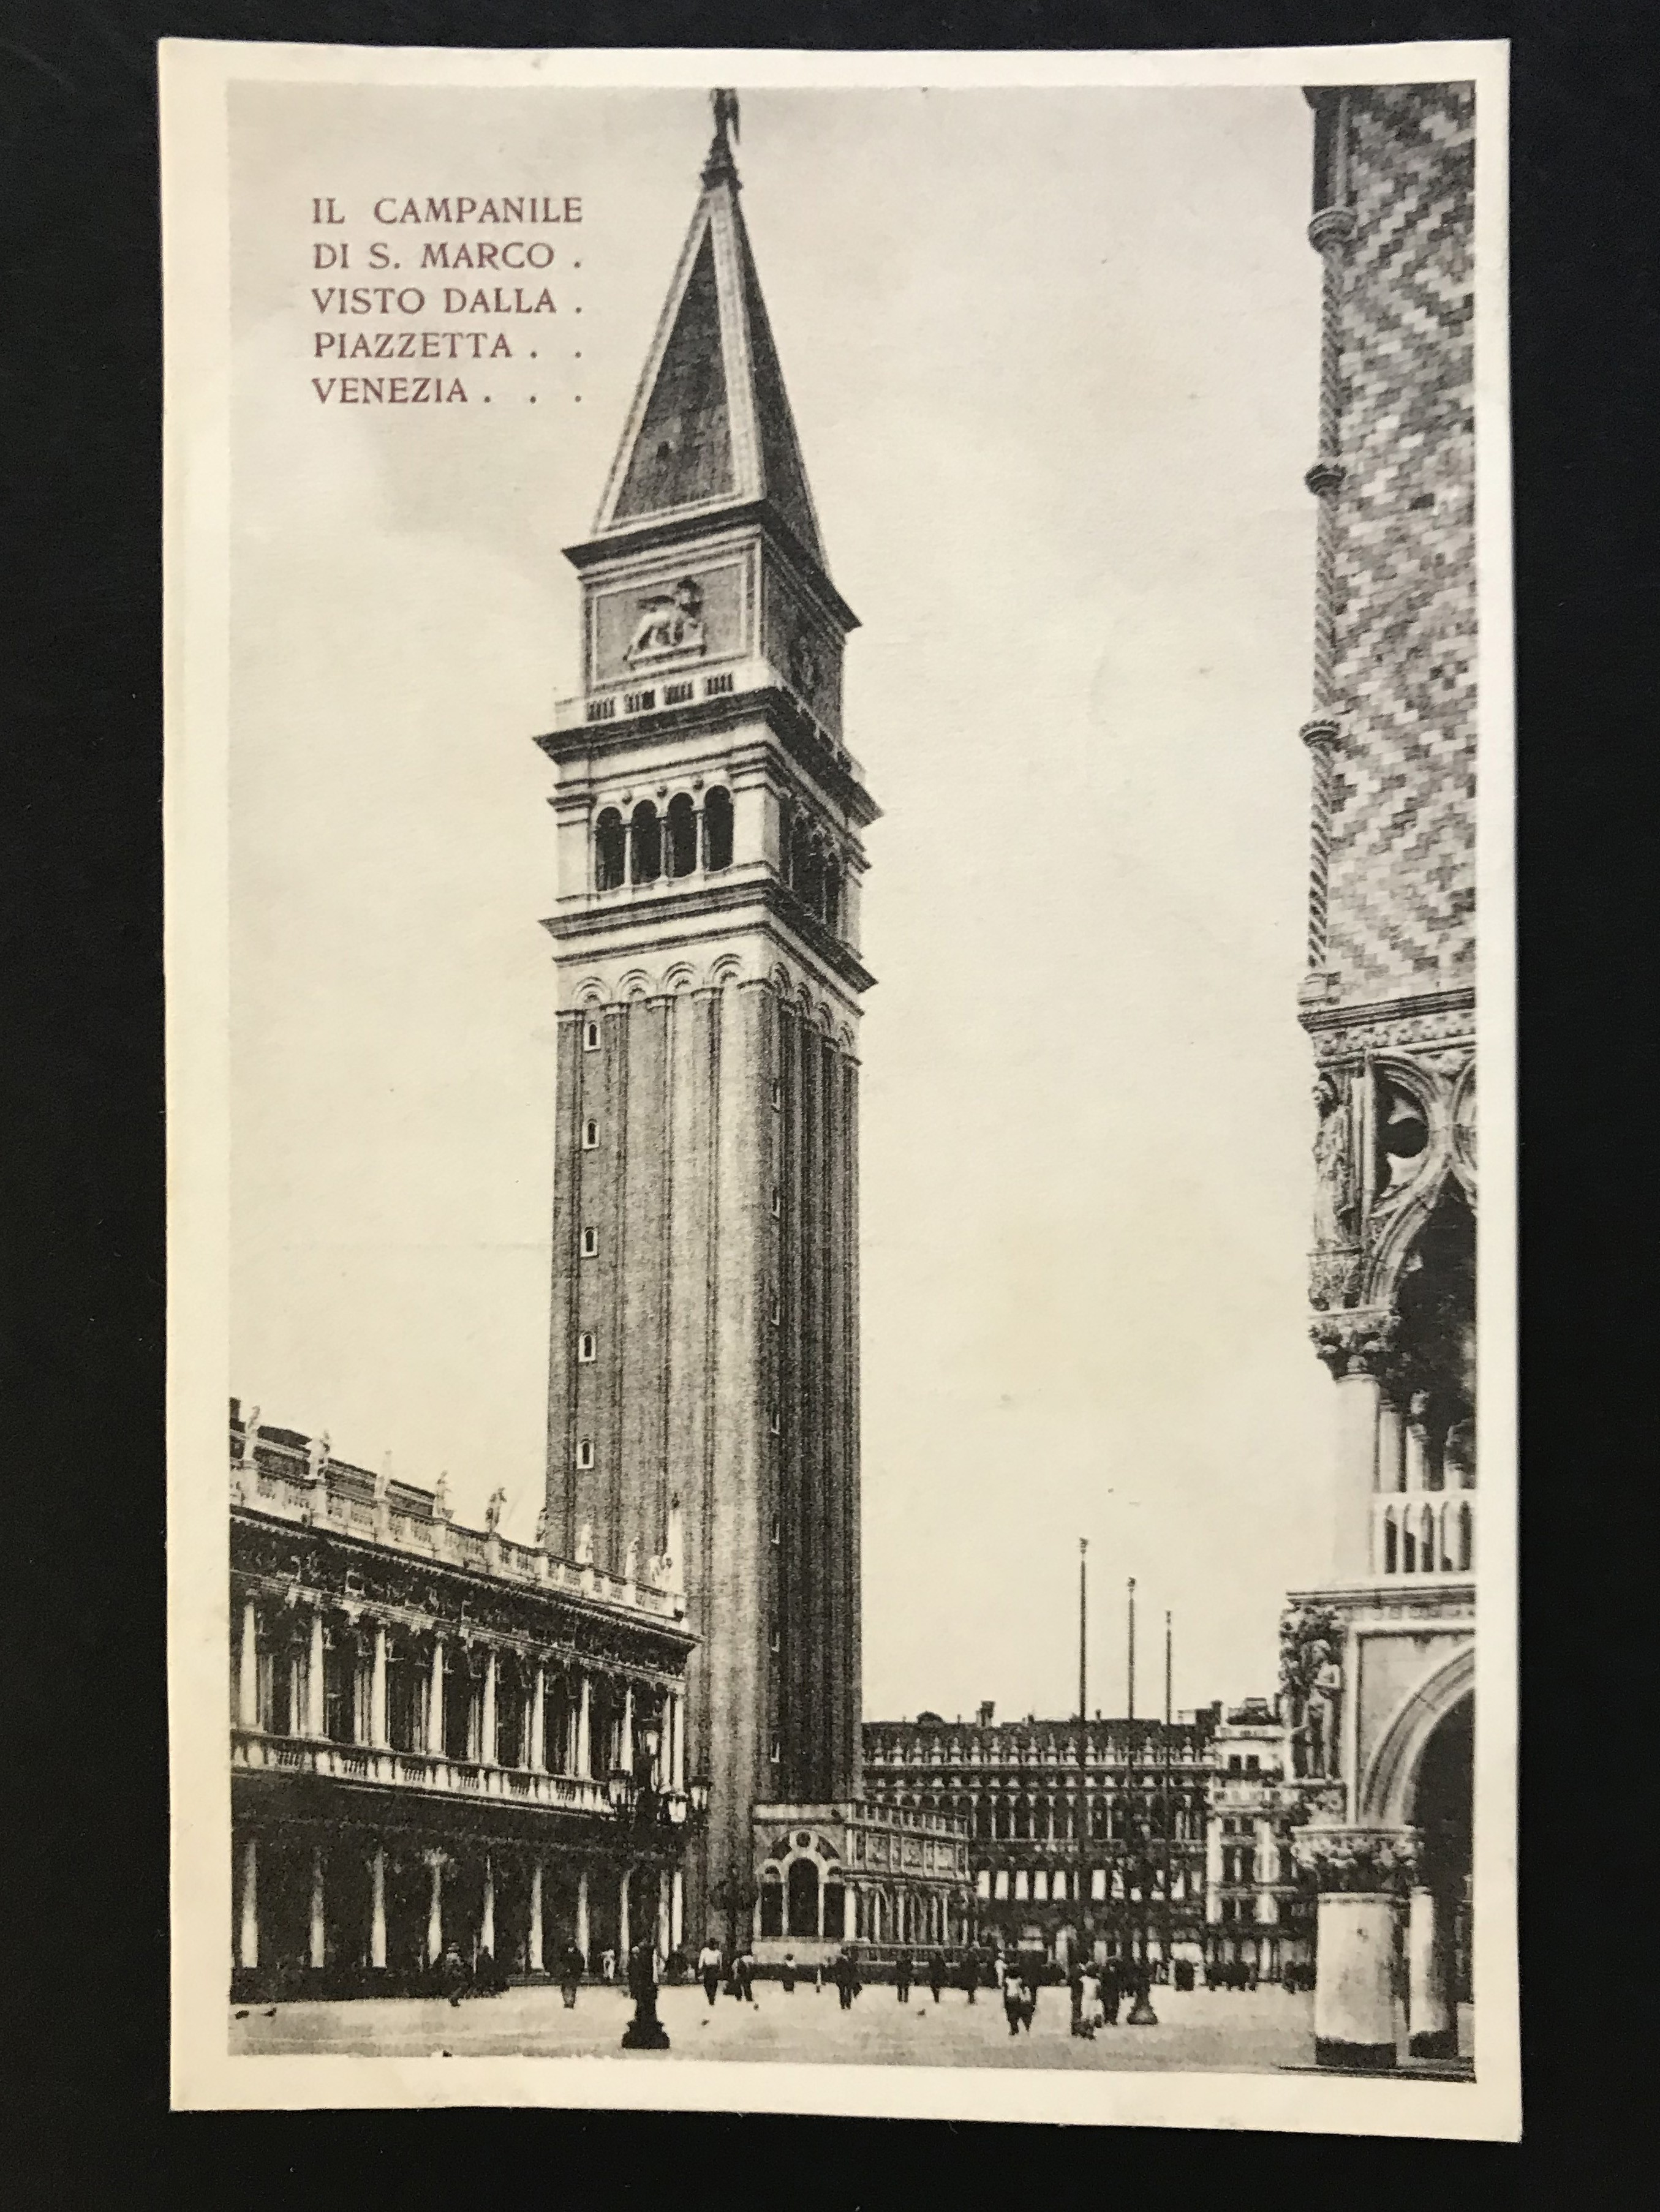 SELECTION OF VENICE RELATED POSTCARDS - Image 30 of 53